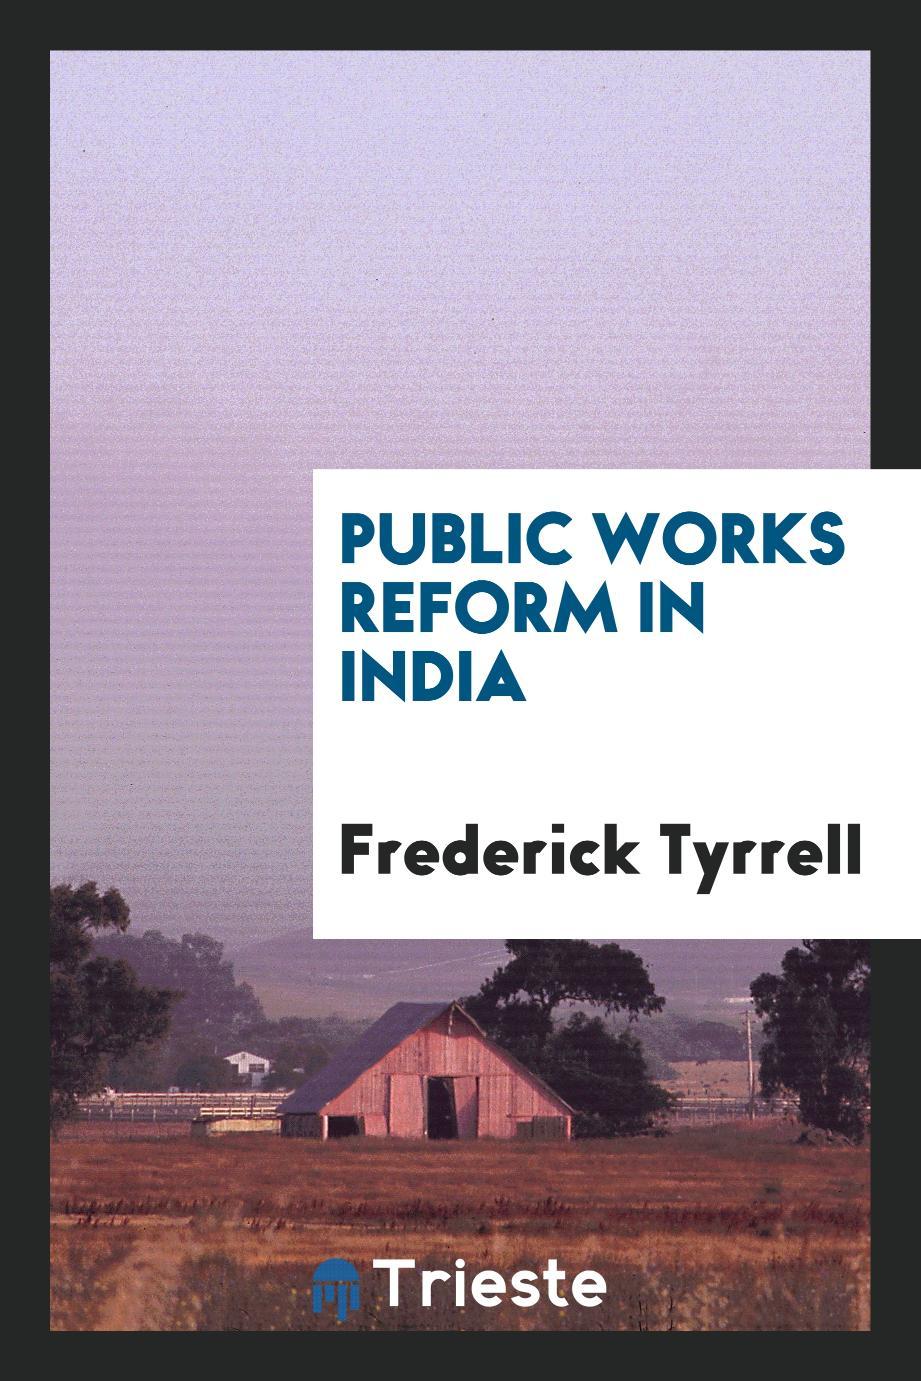 Public works reform in India